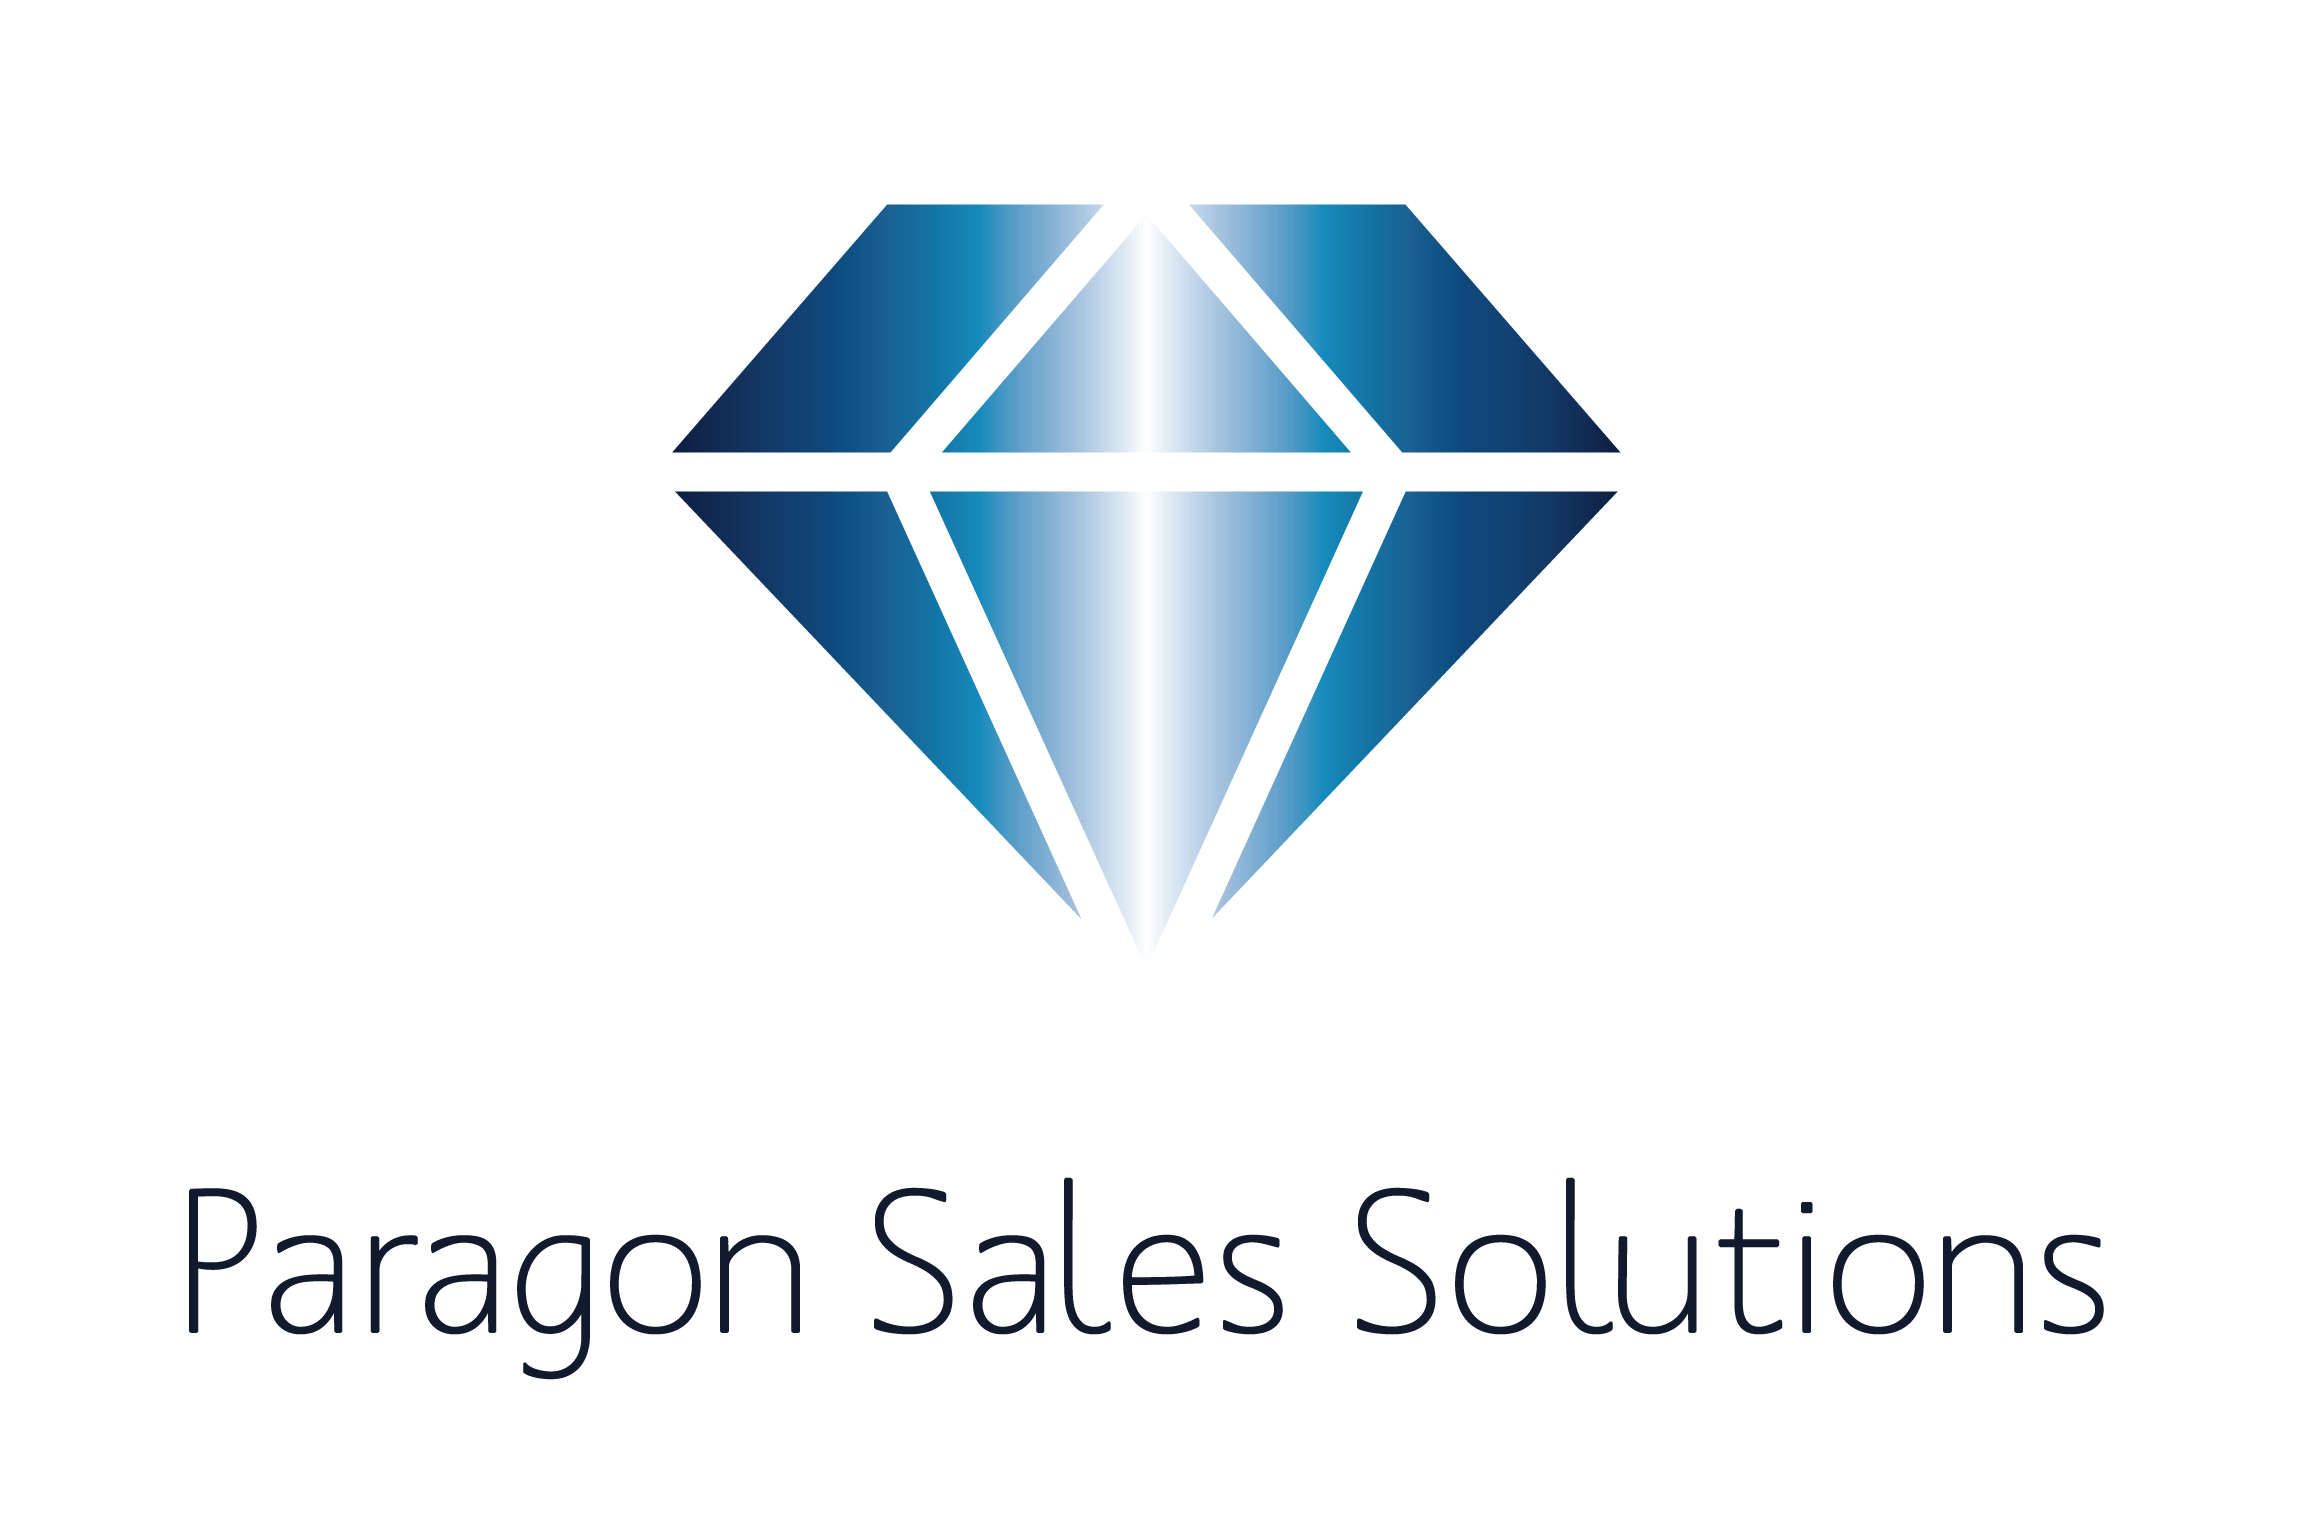 Paragon Sales Solutions Logo